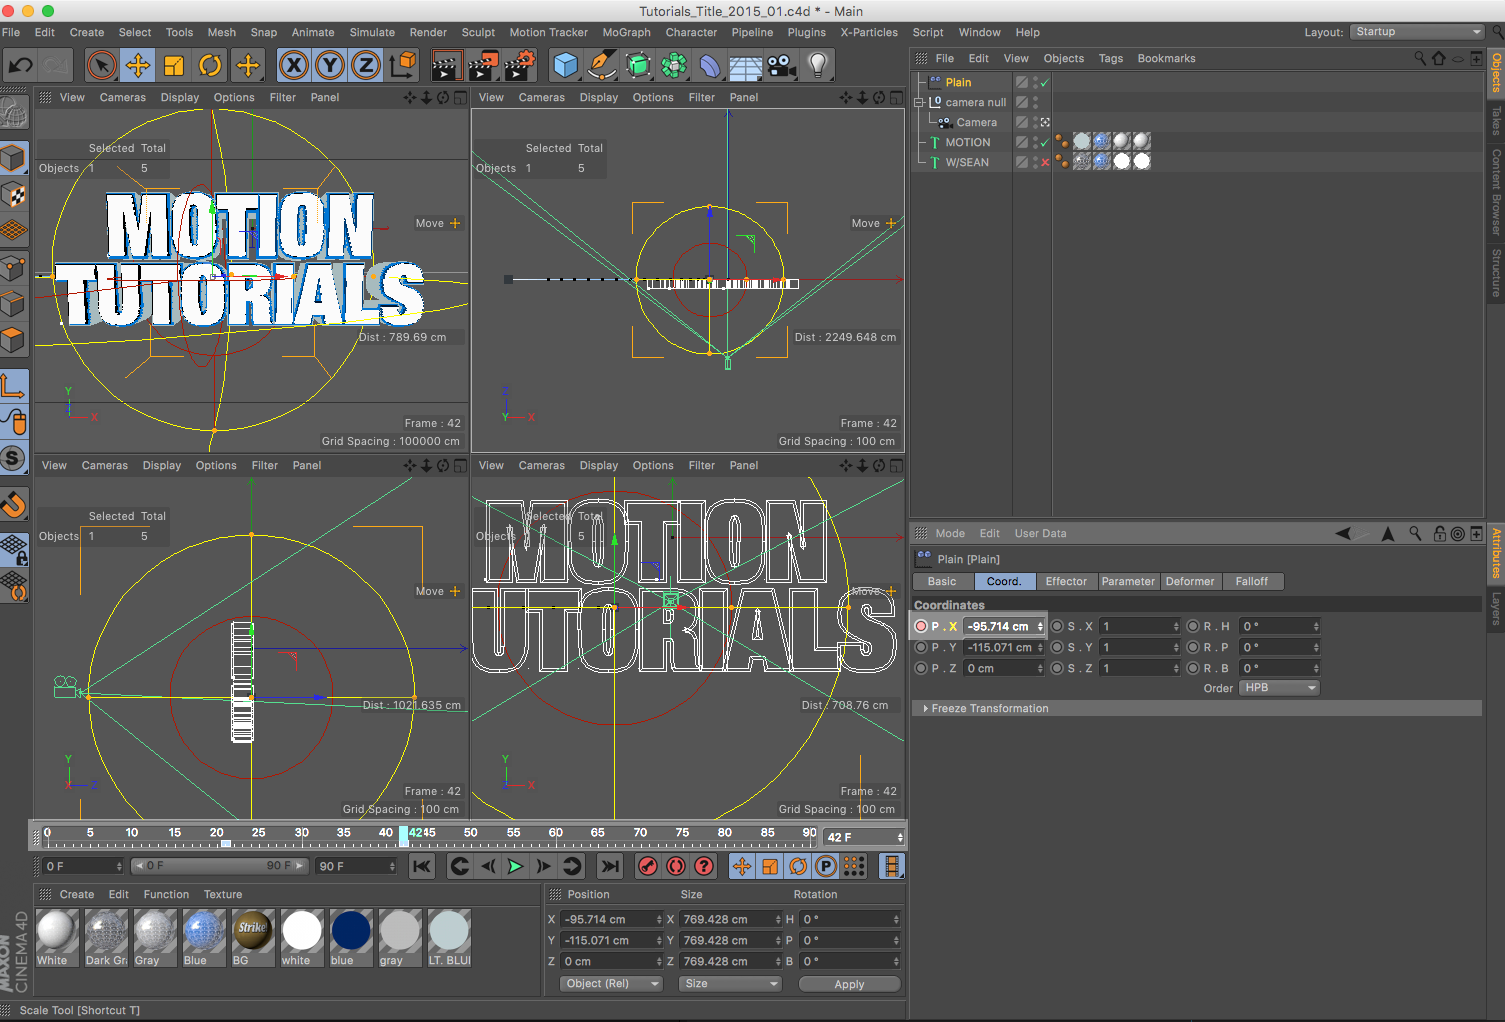 Now we're talking, animation time!